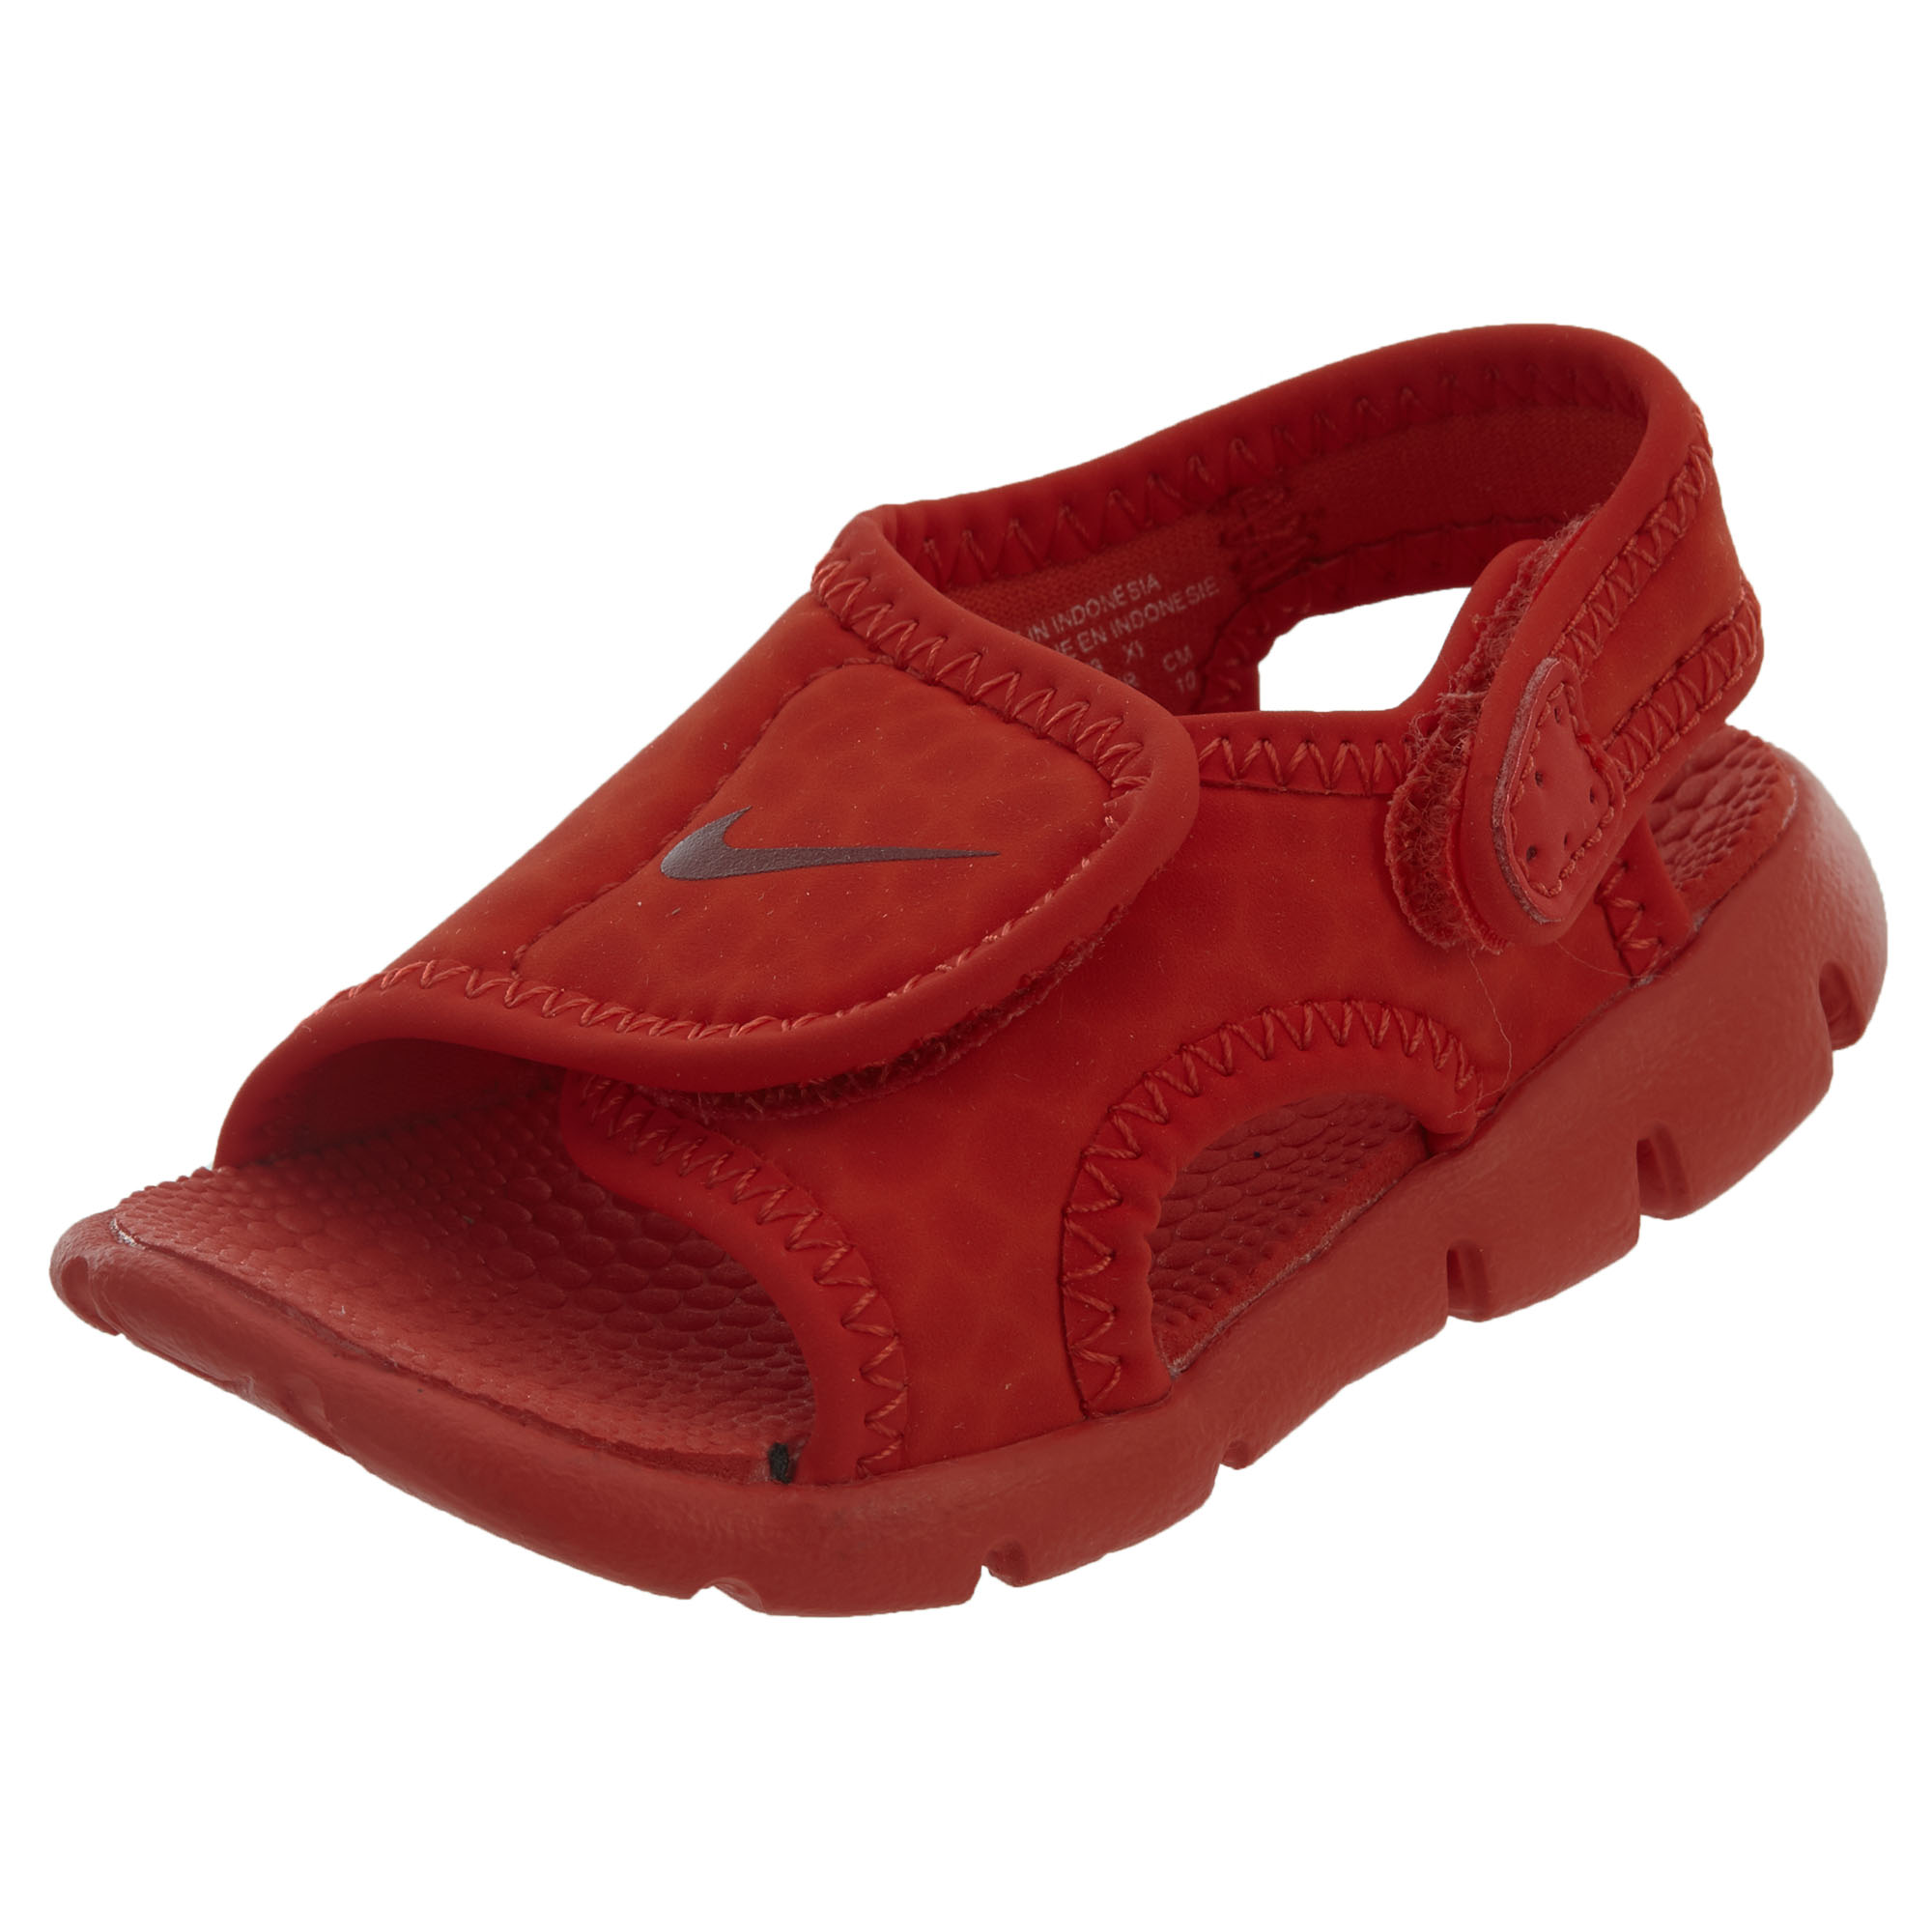 3132067c39a1 Details about Nike Toddlers Sunray Adjust 4 Sandals 386519-603